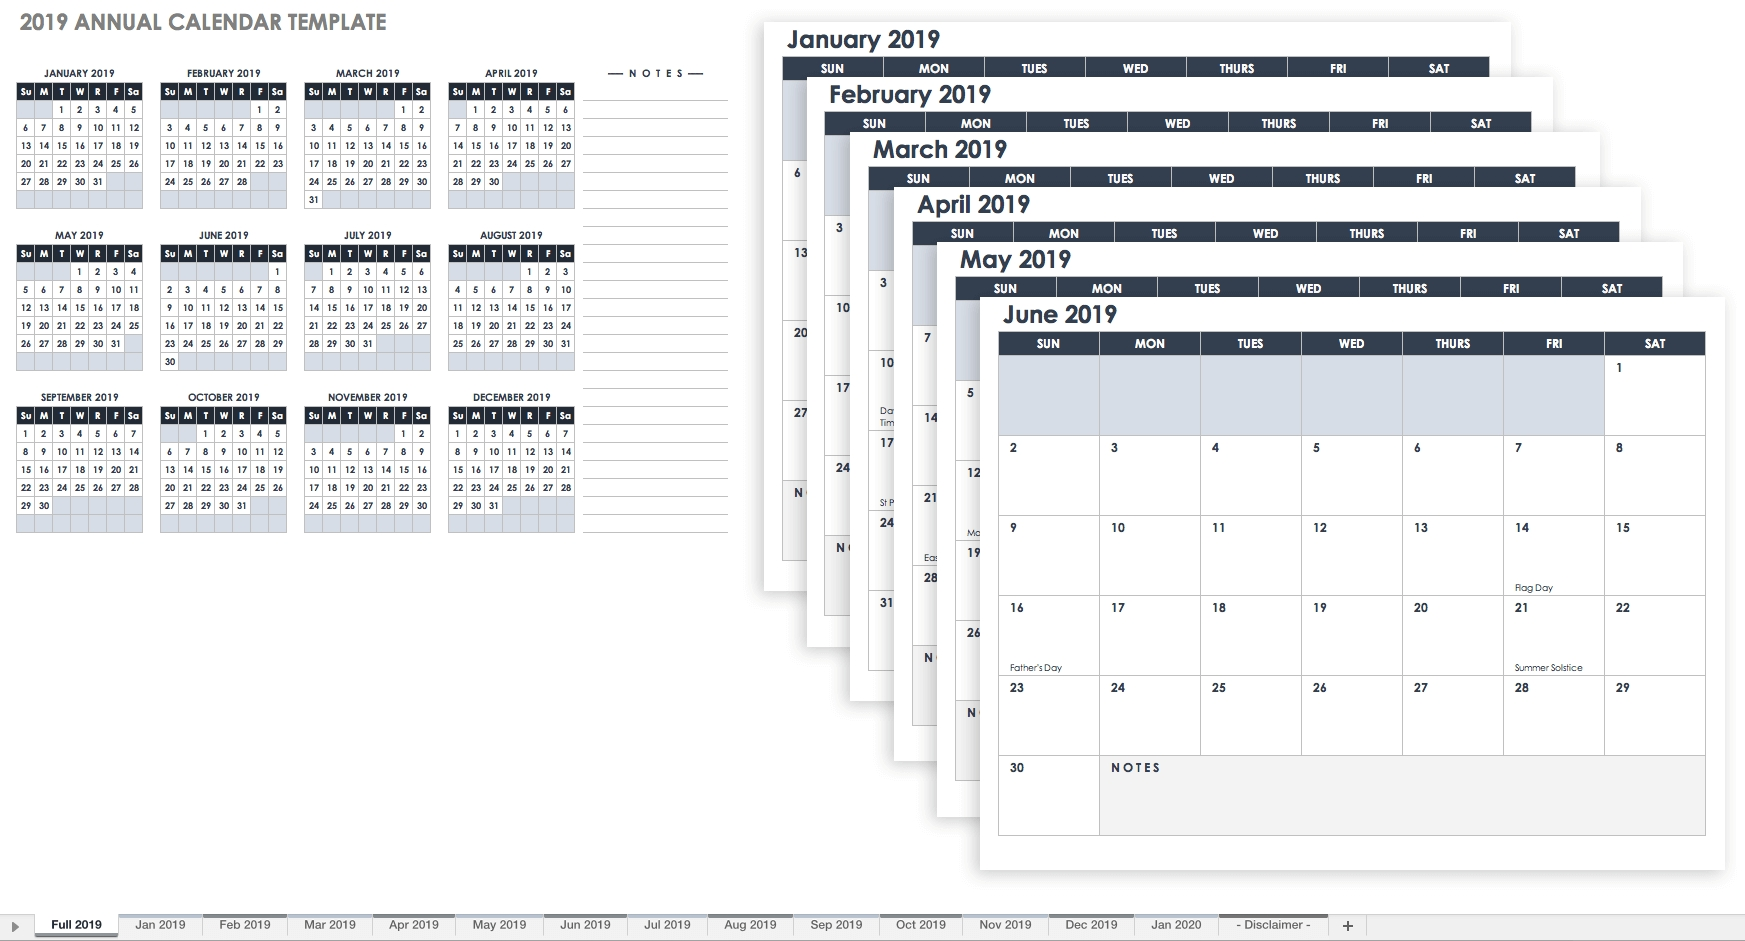 15 Free Monthly Calendar Templates | Smartsheet throughout 2019- 2020 Academic Calendar Printable Empty Boxes